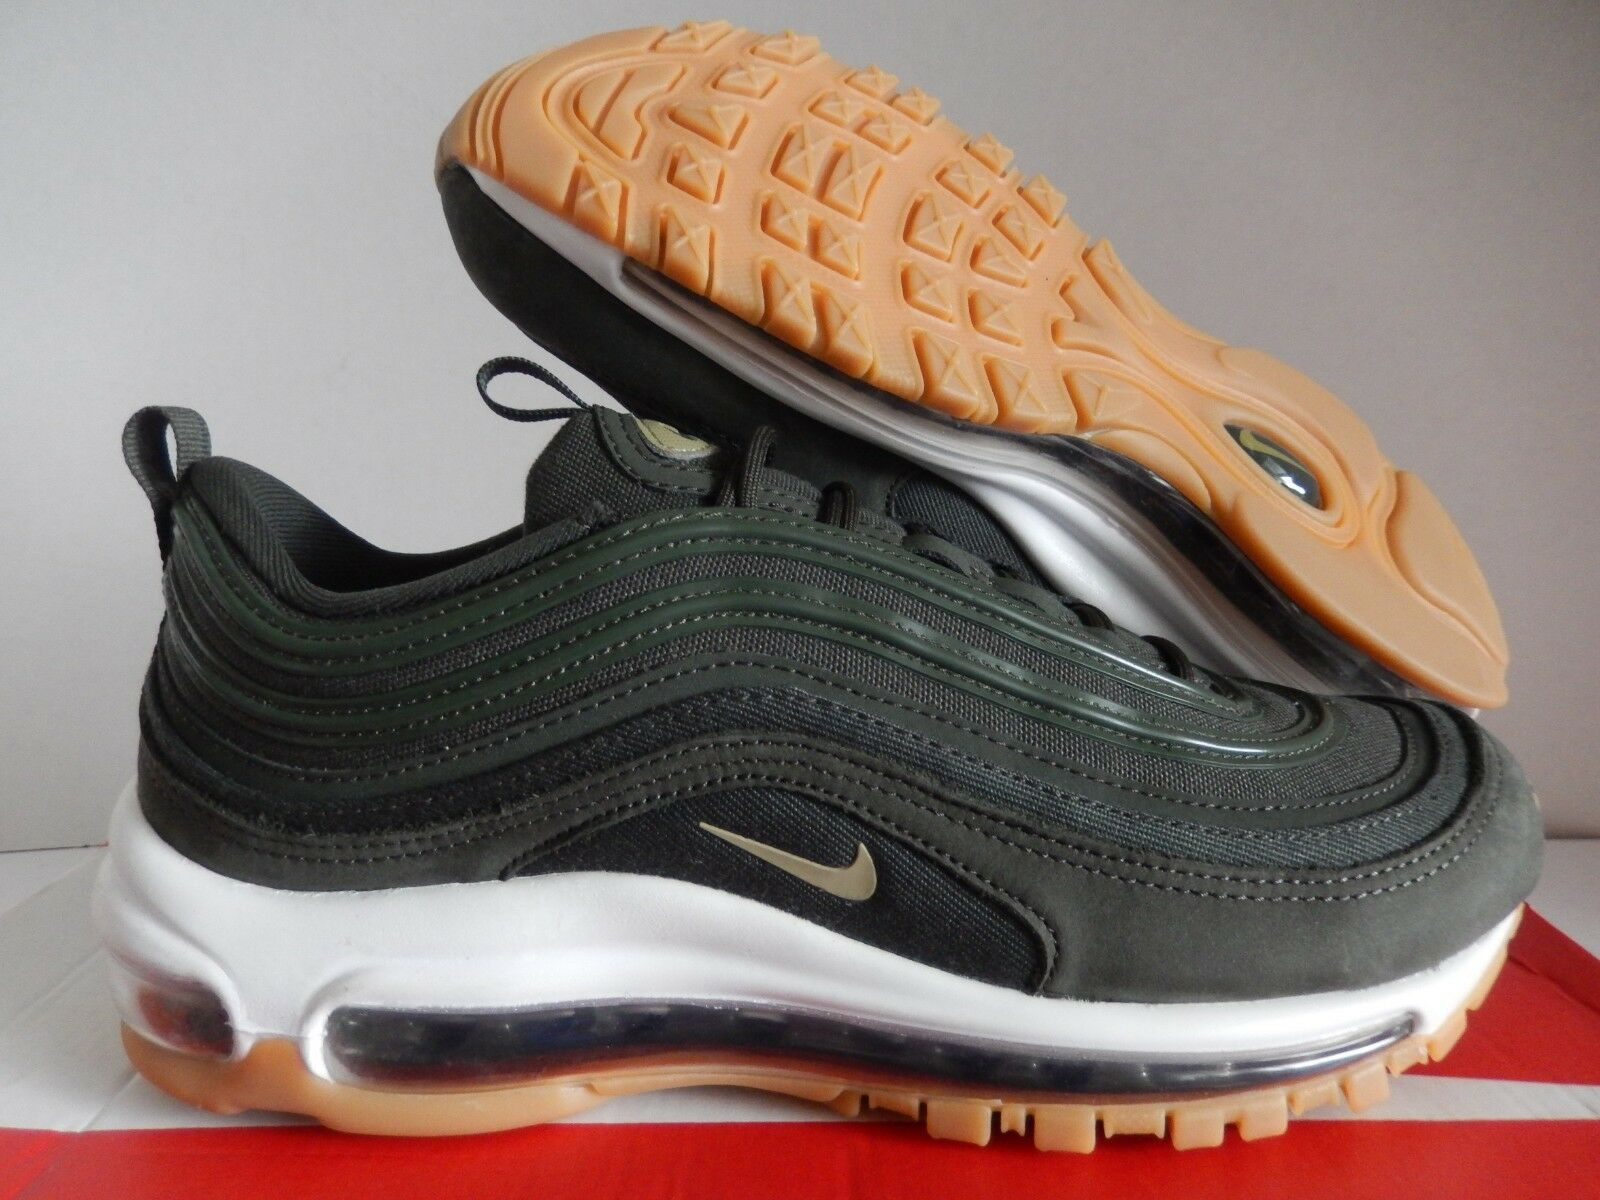 WMNS NIKE AIR MAX 97 UT SEQUOIA GREEN-NEUTRAL OLIVE SZ 7.5 [AJ2248-300]